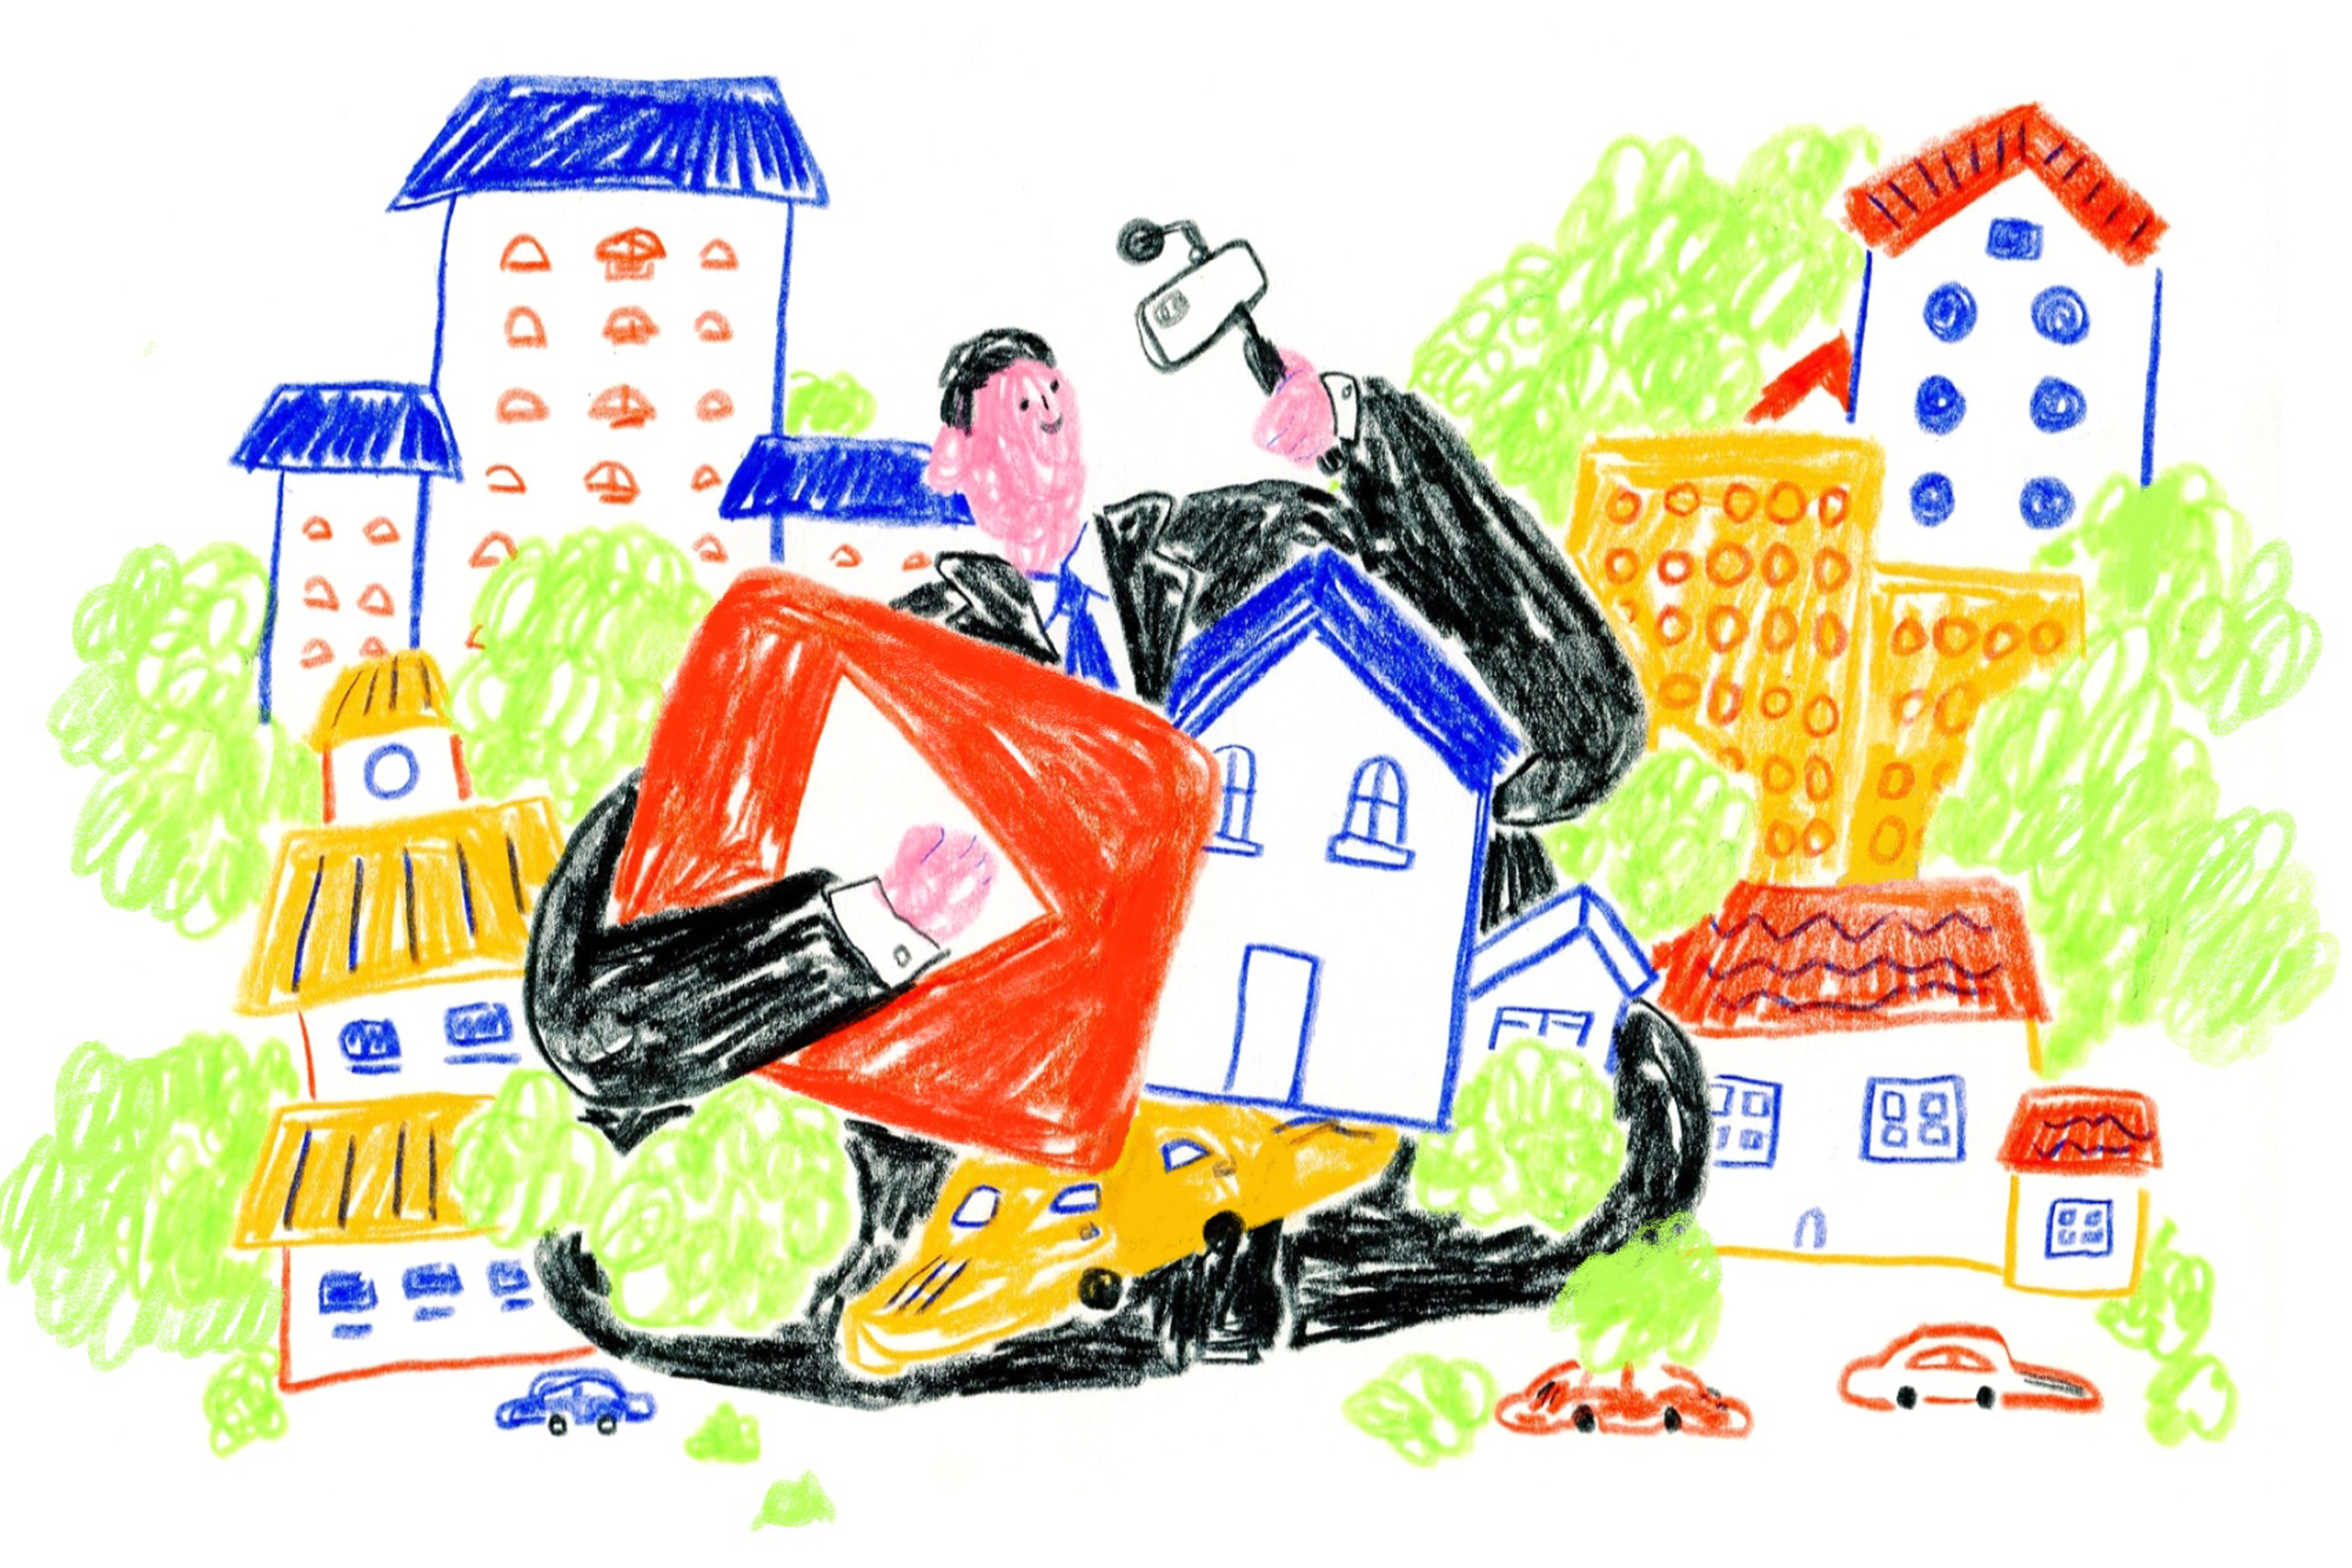 A man in a black suit holding up his cell phone on a selfie stick in the act of vlogging. He's holding a large Youtube logo in one arm and is surrounded by a neighborhood scene, homes, and cars. Illustration.